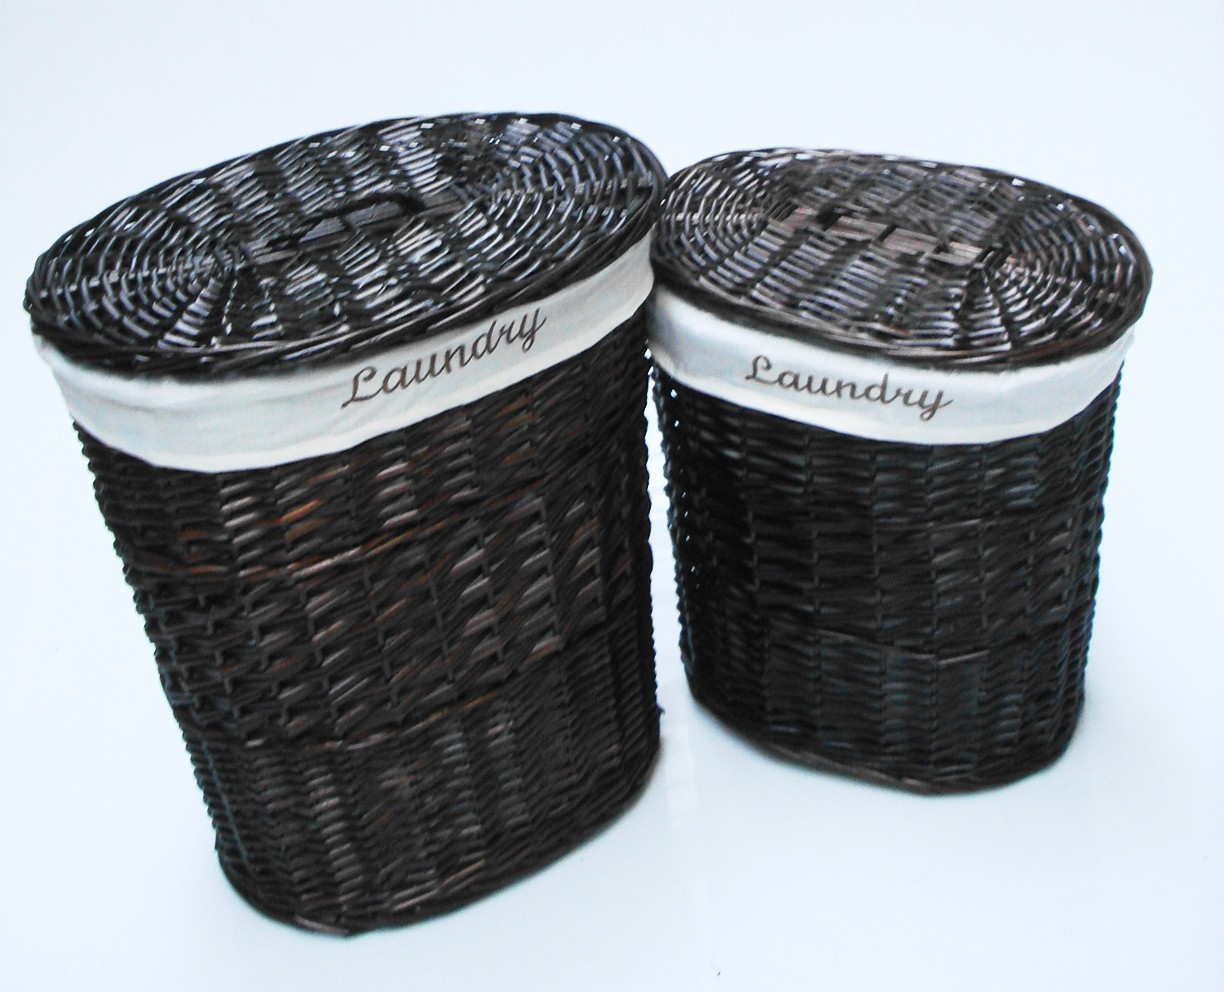 Black Wicker Hamper Brown White Black Oval Wicker Laundry Basket With Lid